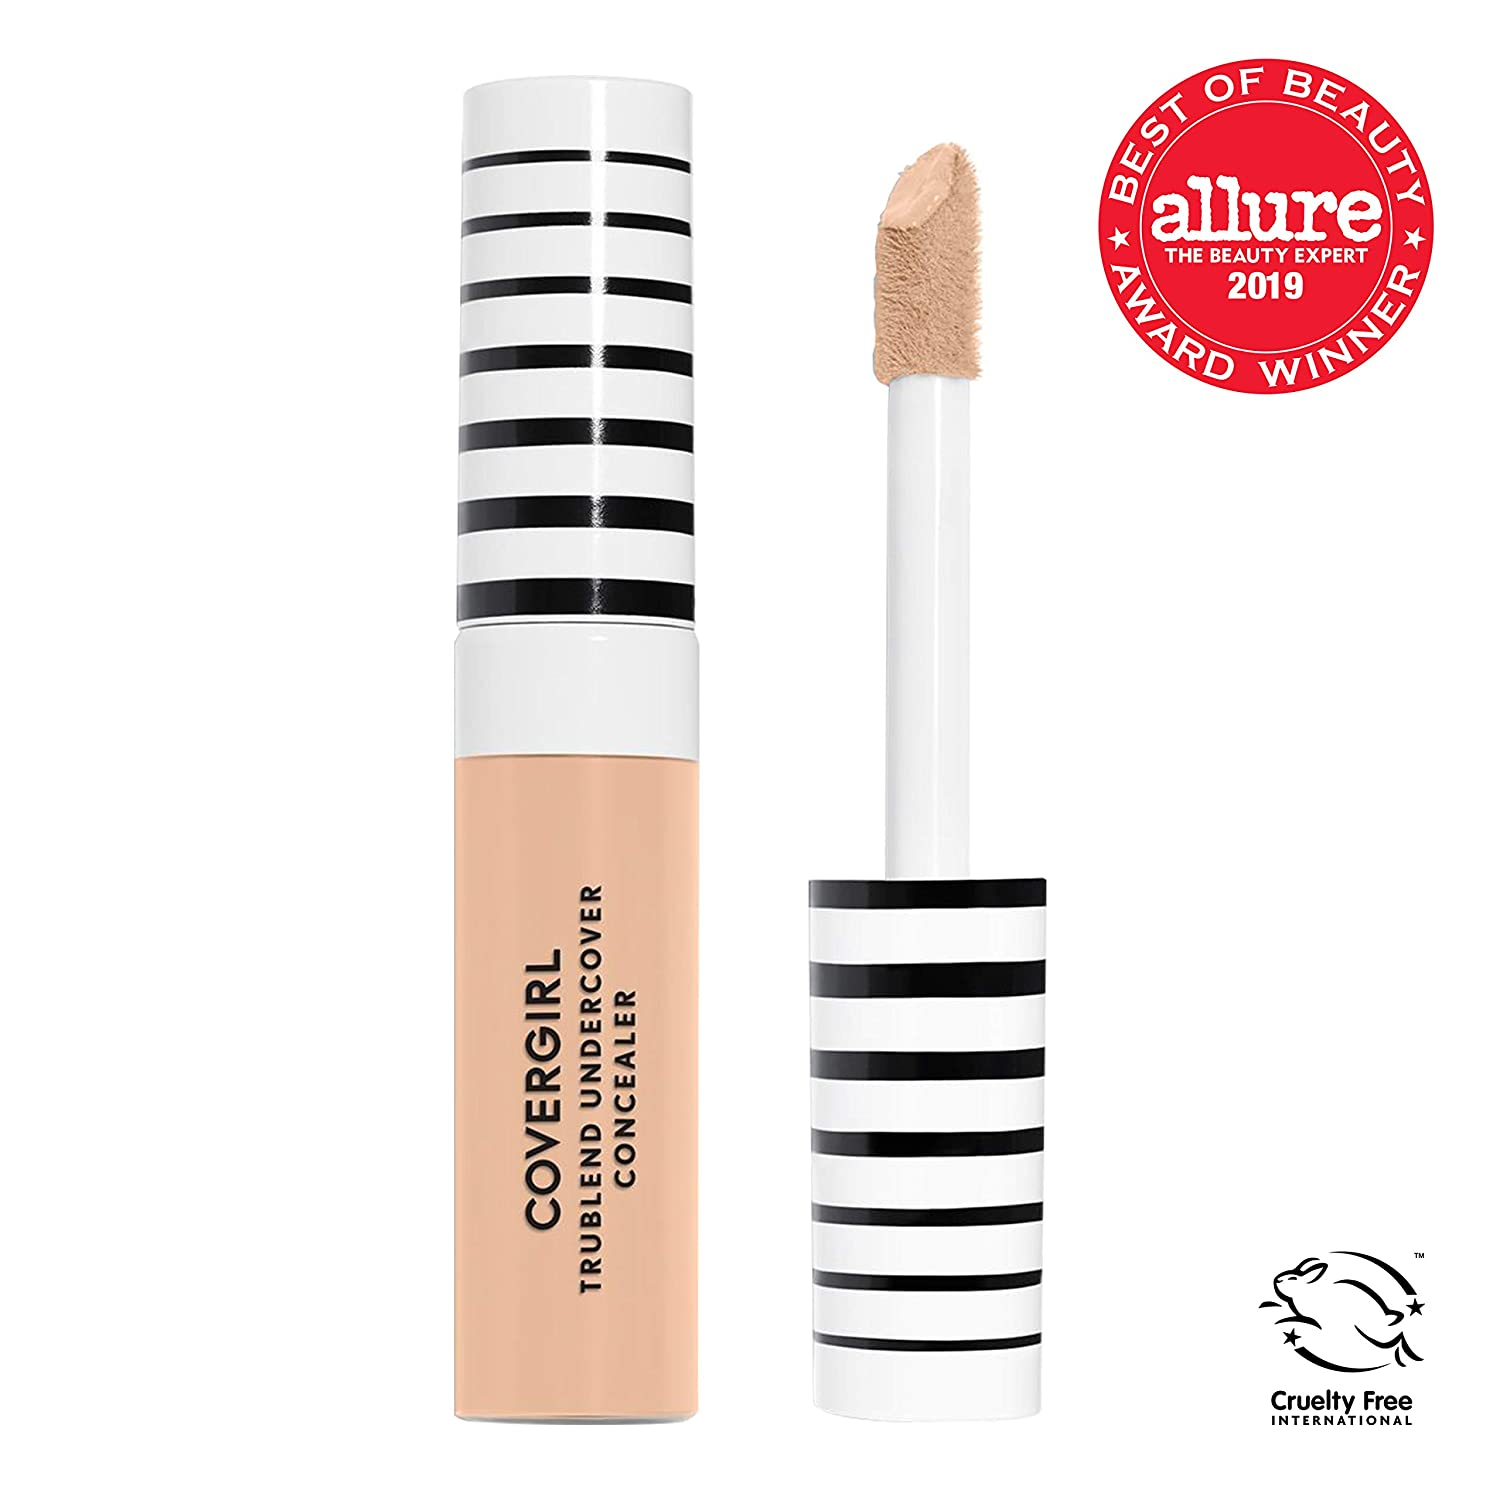 Covergirl TruBlend Undercover Concealer, Classic Beige, Pack of 1